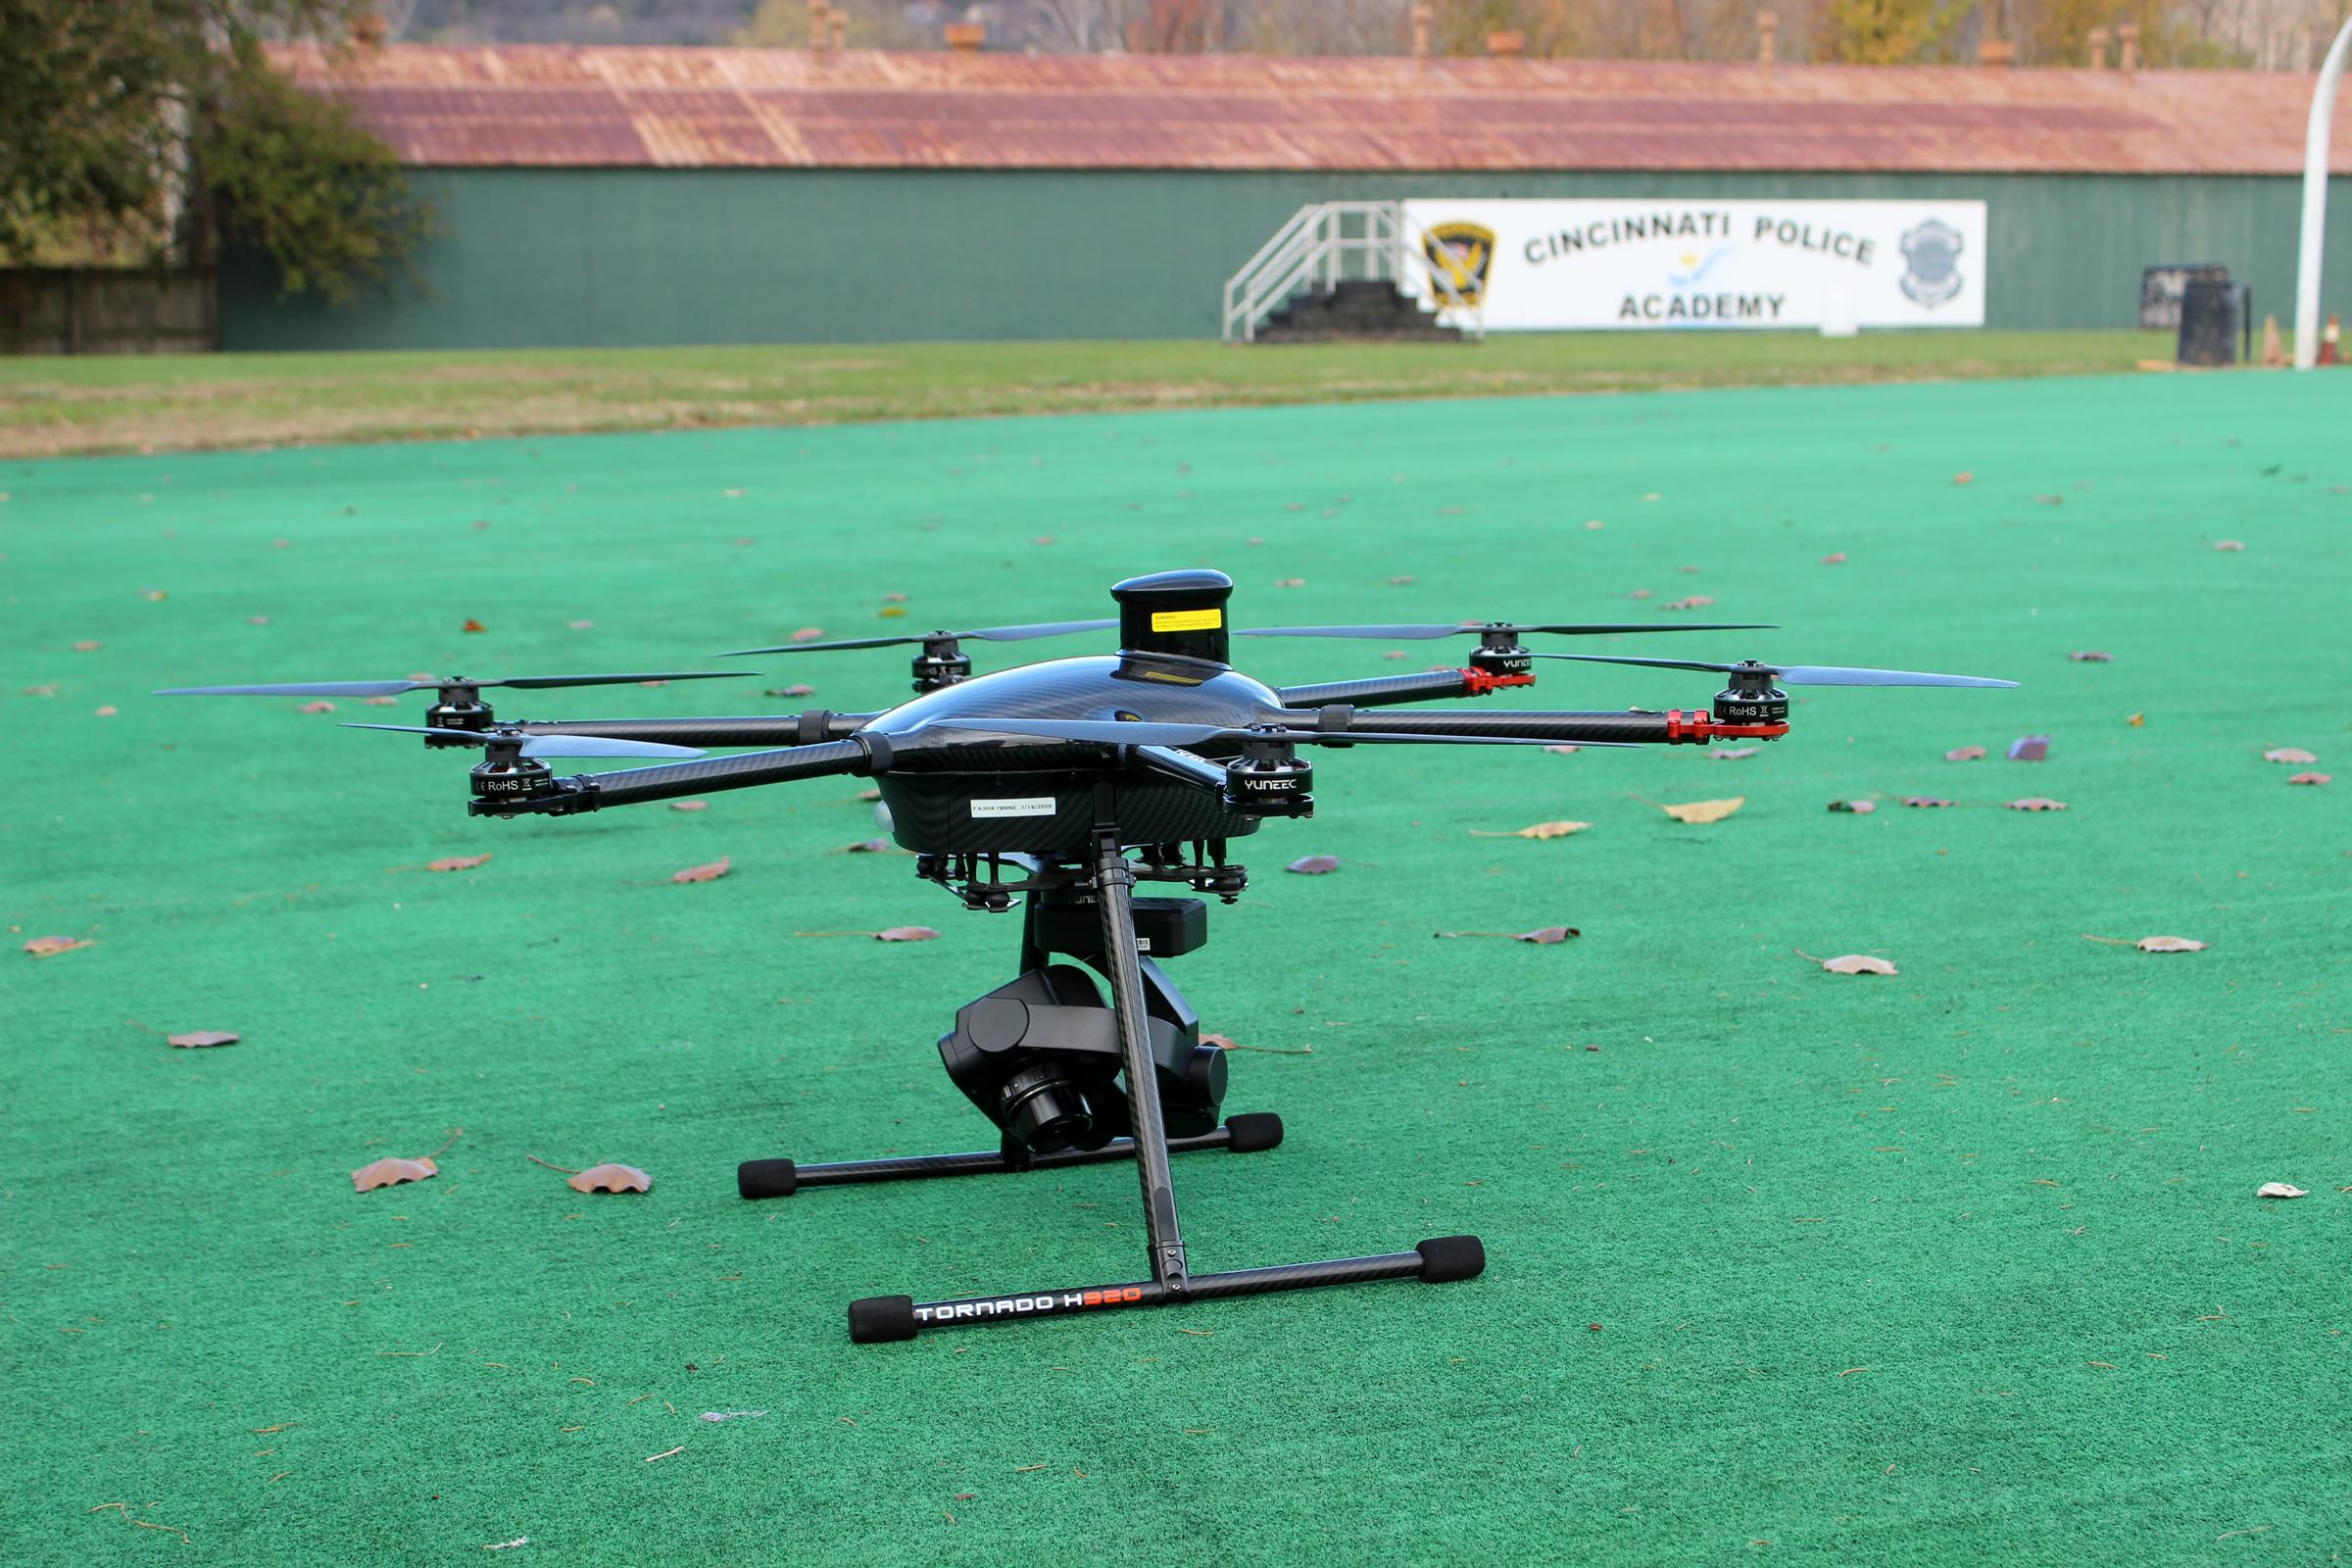 Cincinnati Police Using Drones To Speed Up Accident Investigations ...